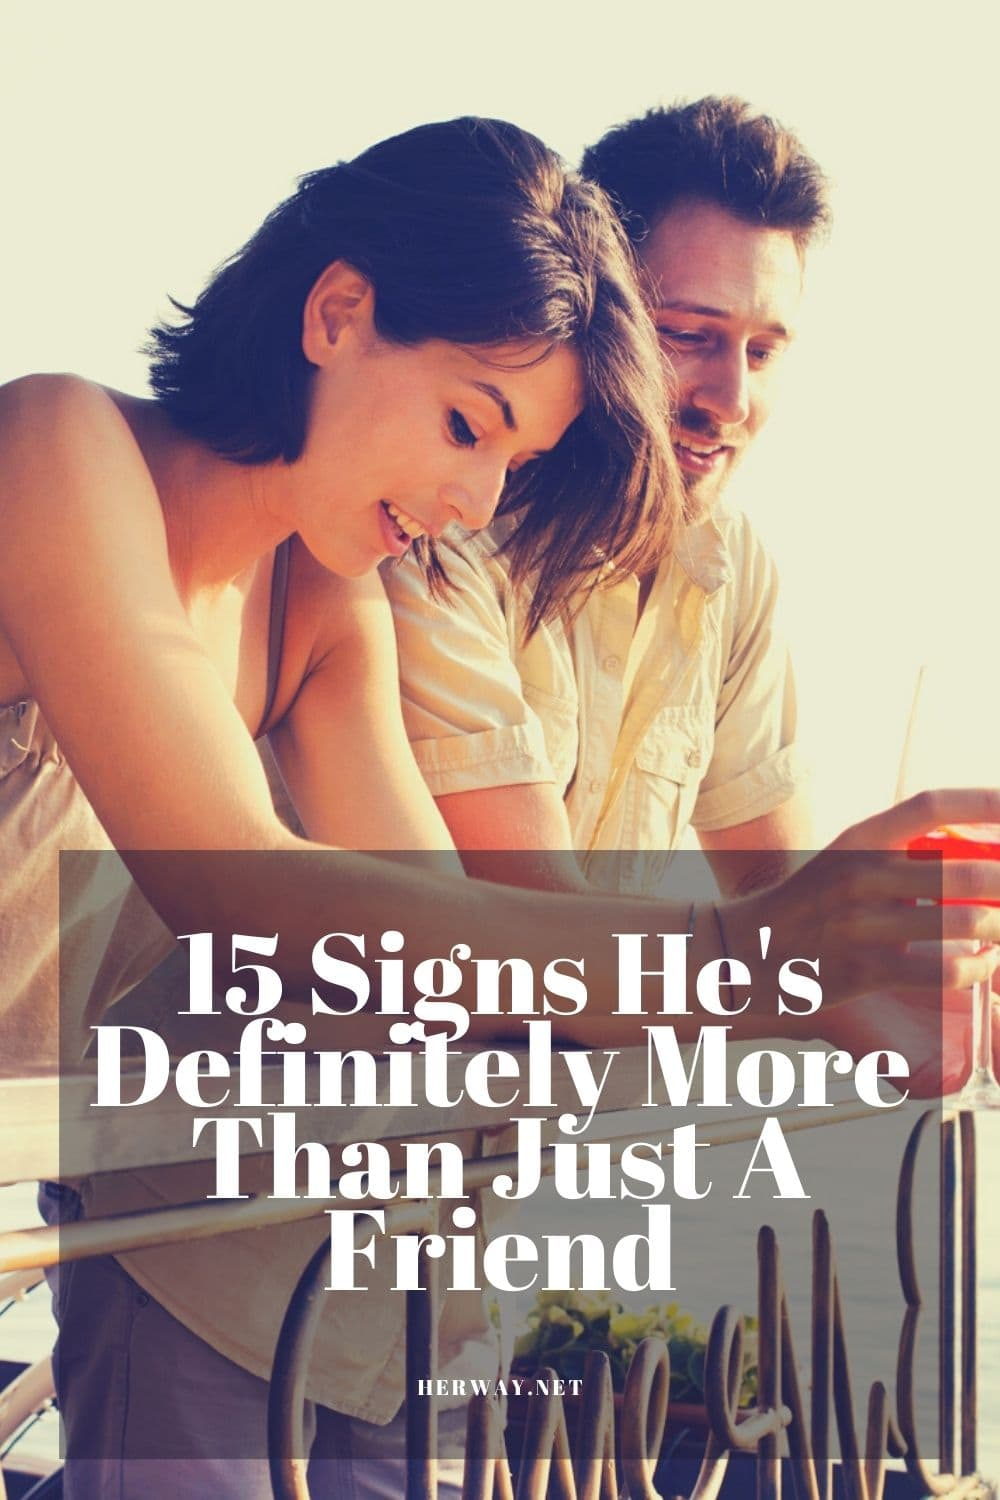 15 Signs He's Definitely More Than Just A Friend